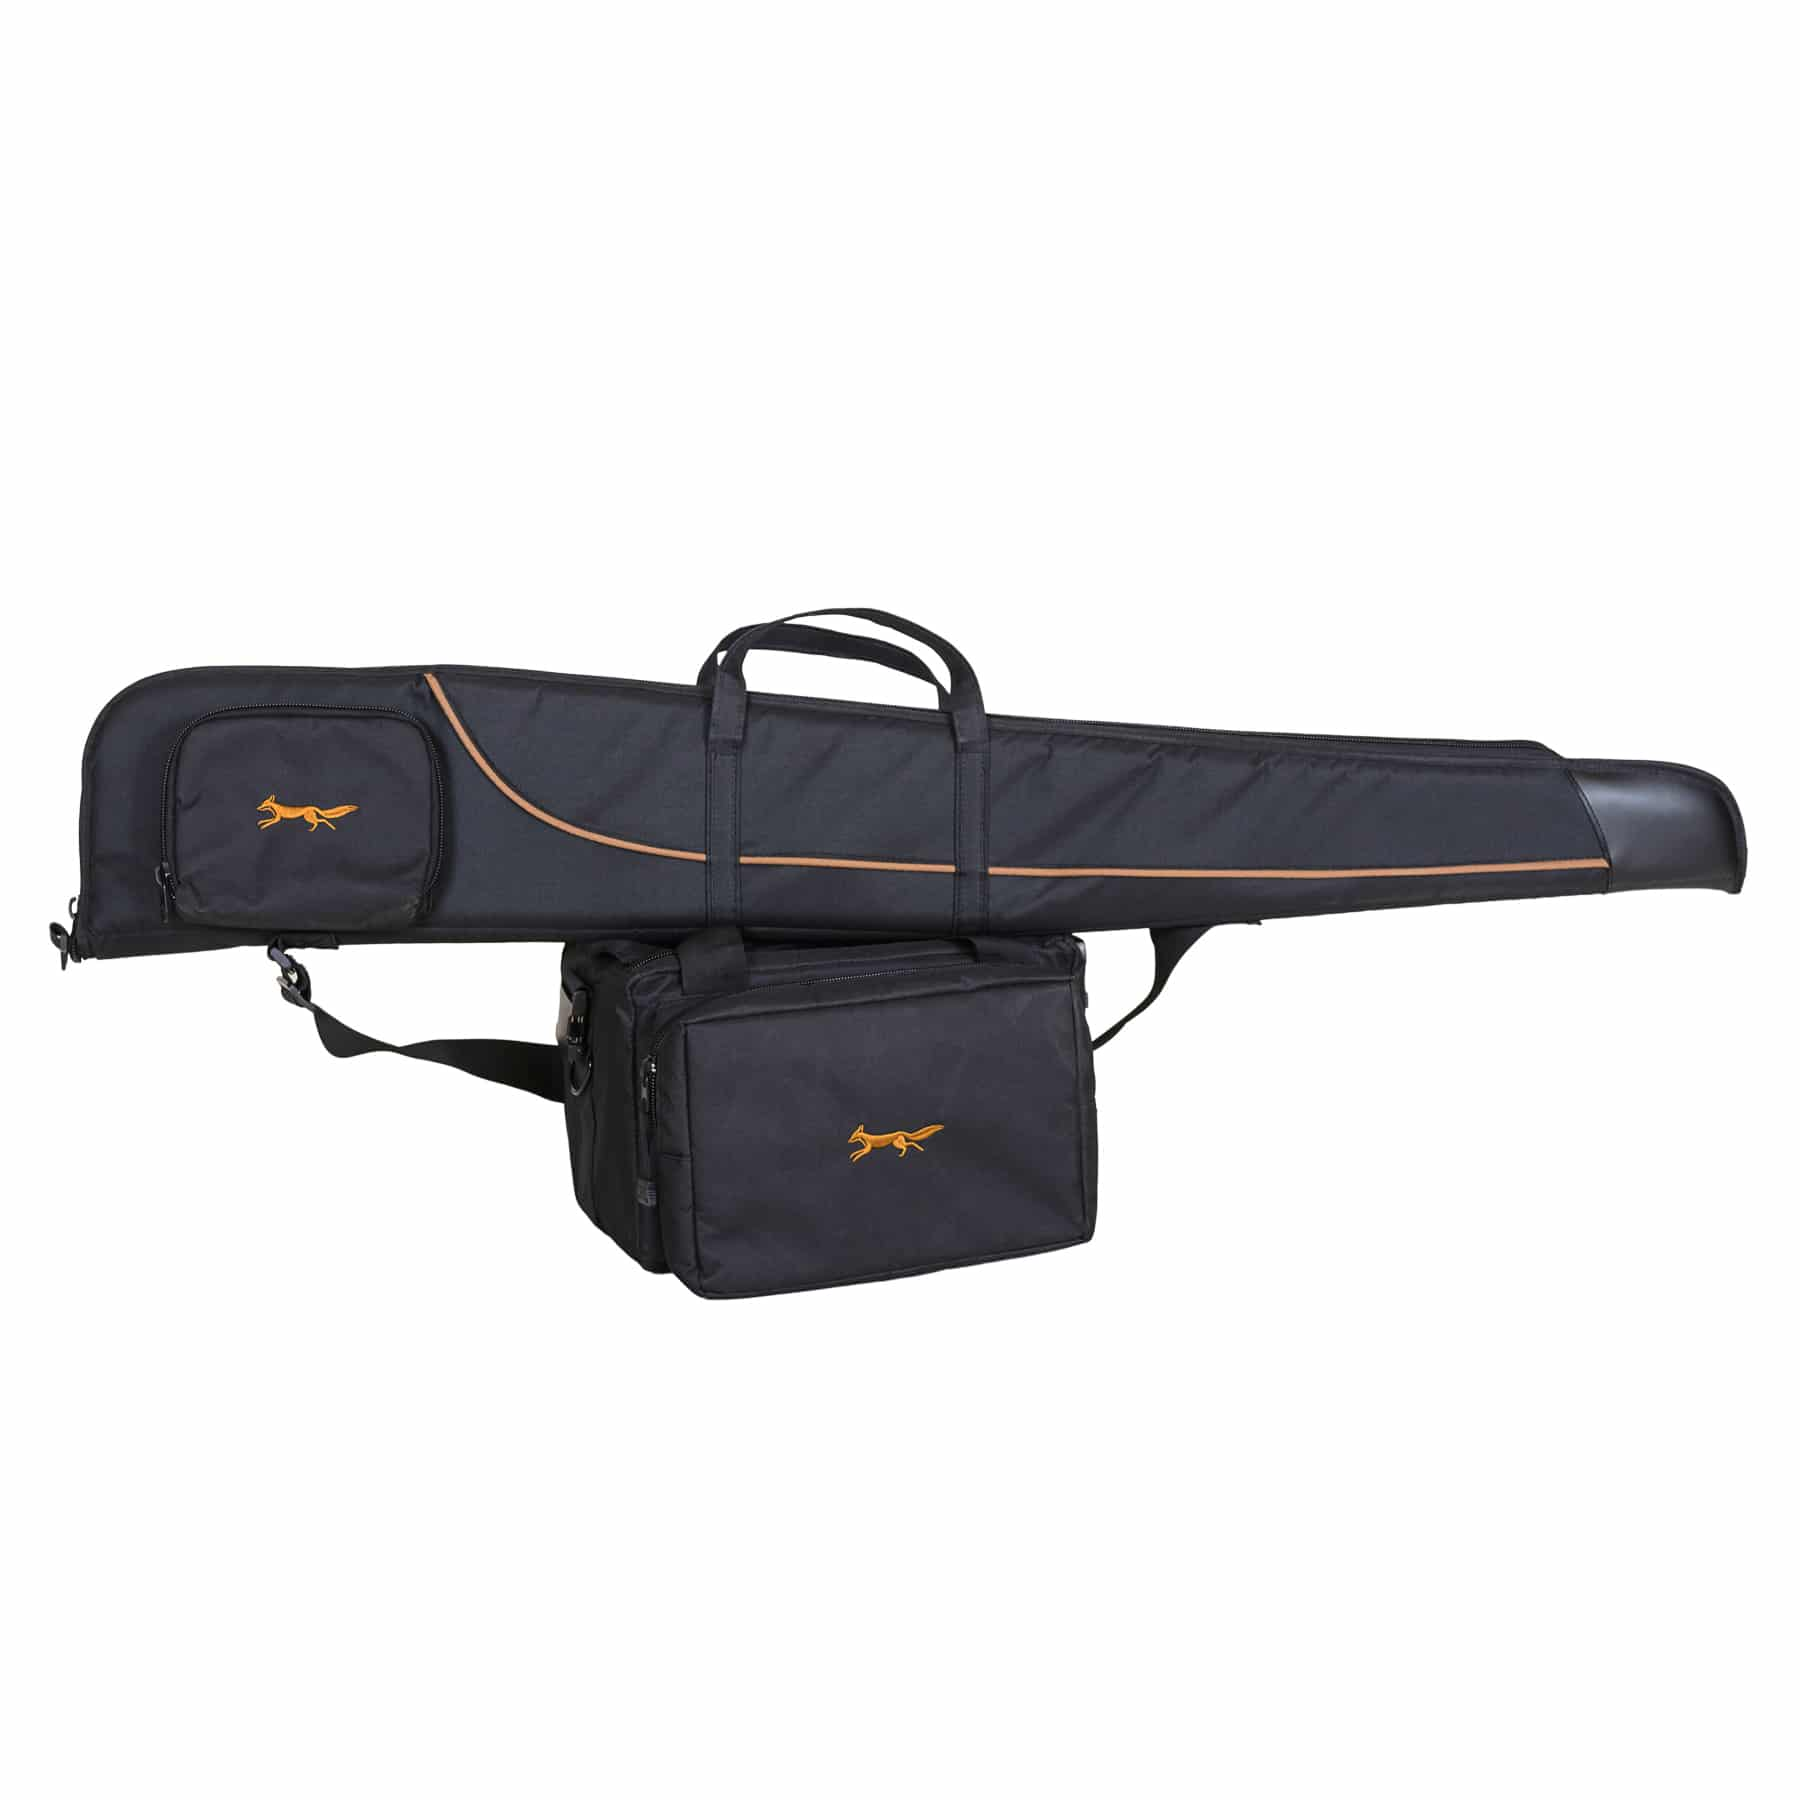 "Bonart Black & Gold Shotgun Gun Slip 30"" or 32"""